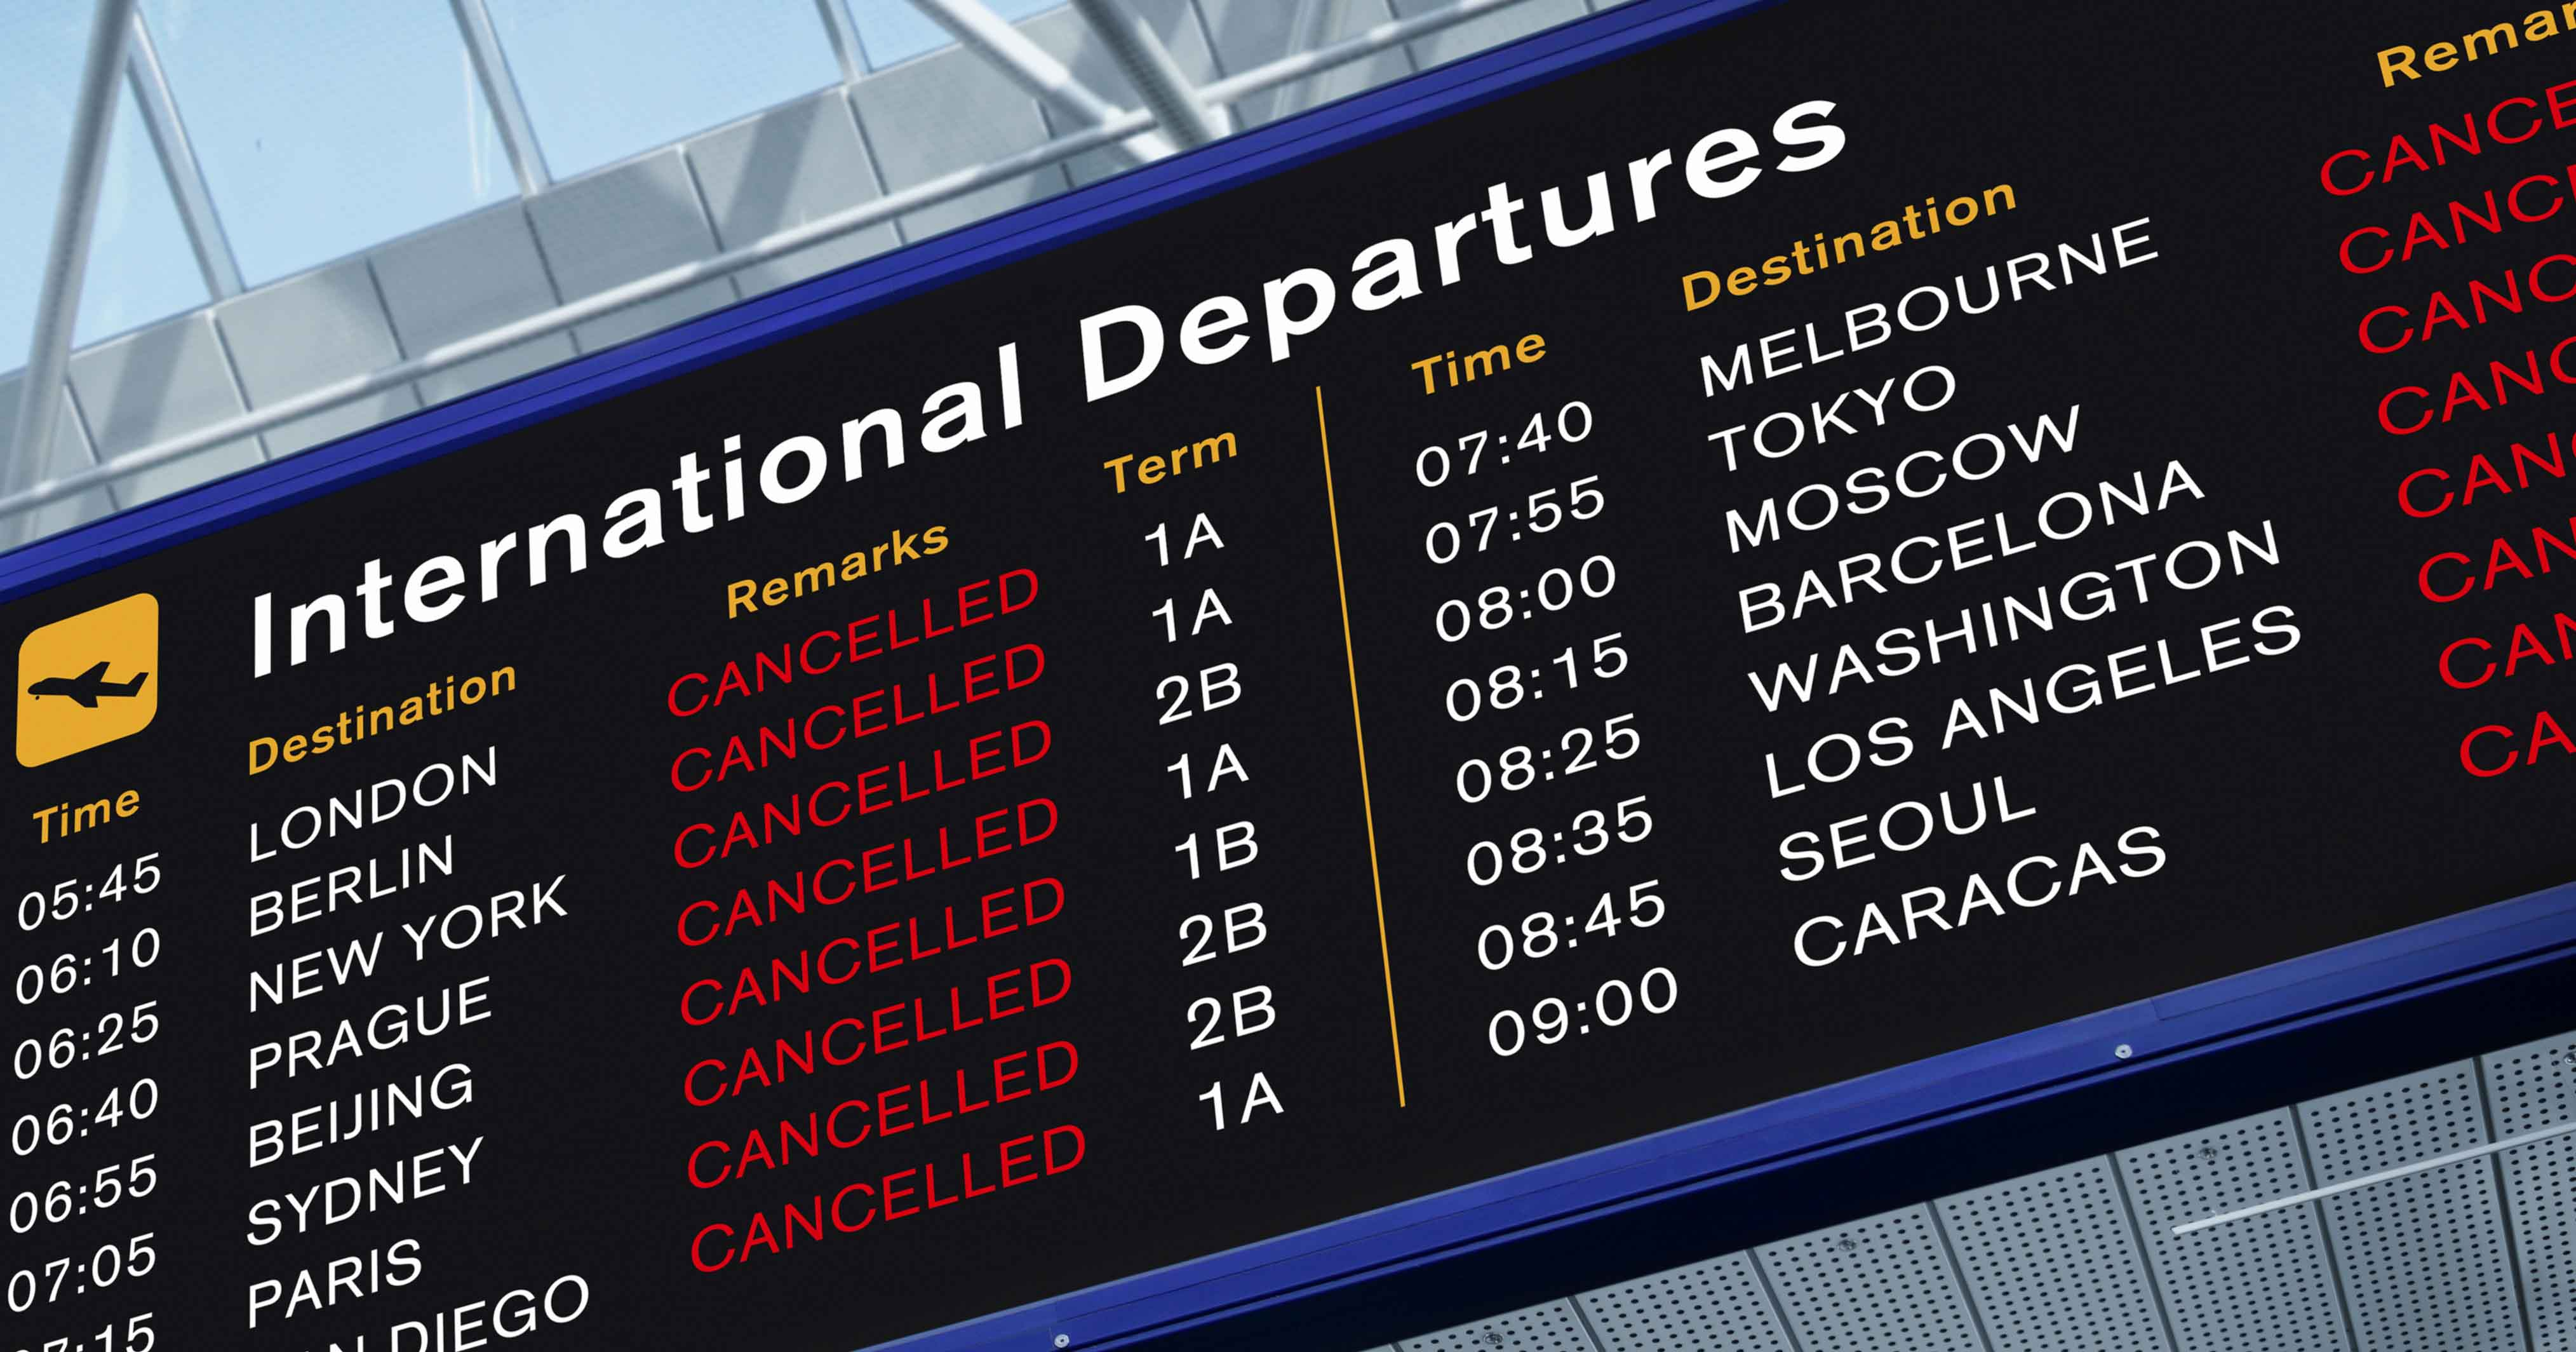 Image of Departure Boards showing cancelled flights